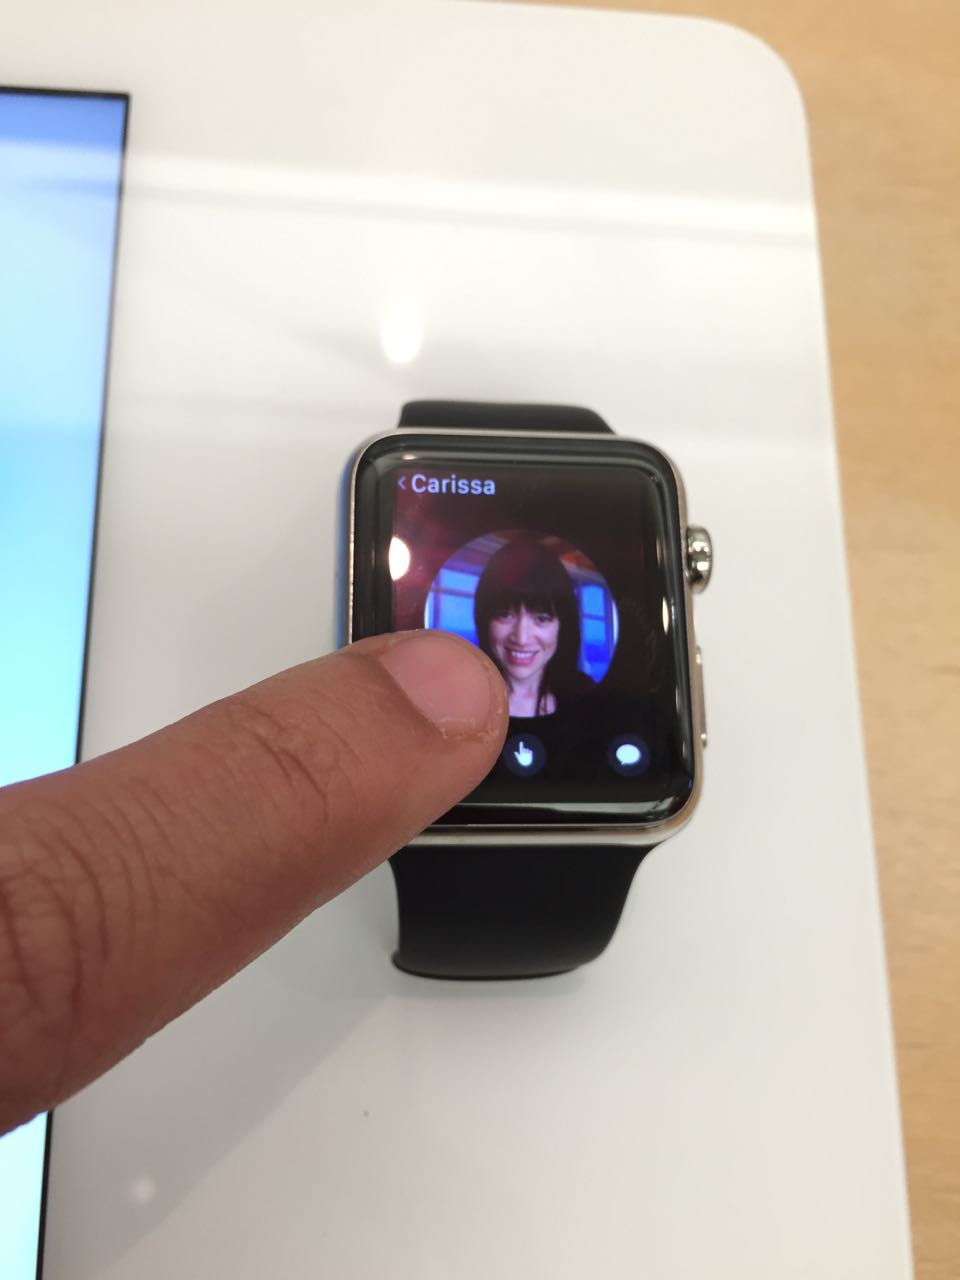 apple_watch_apple Store6.jpg